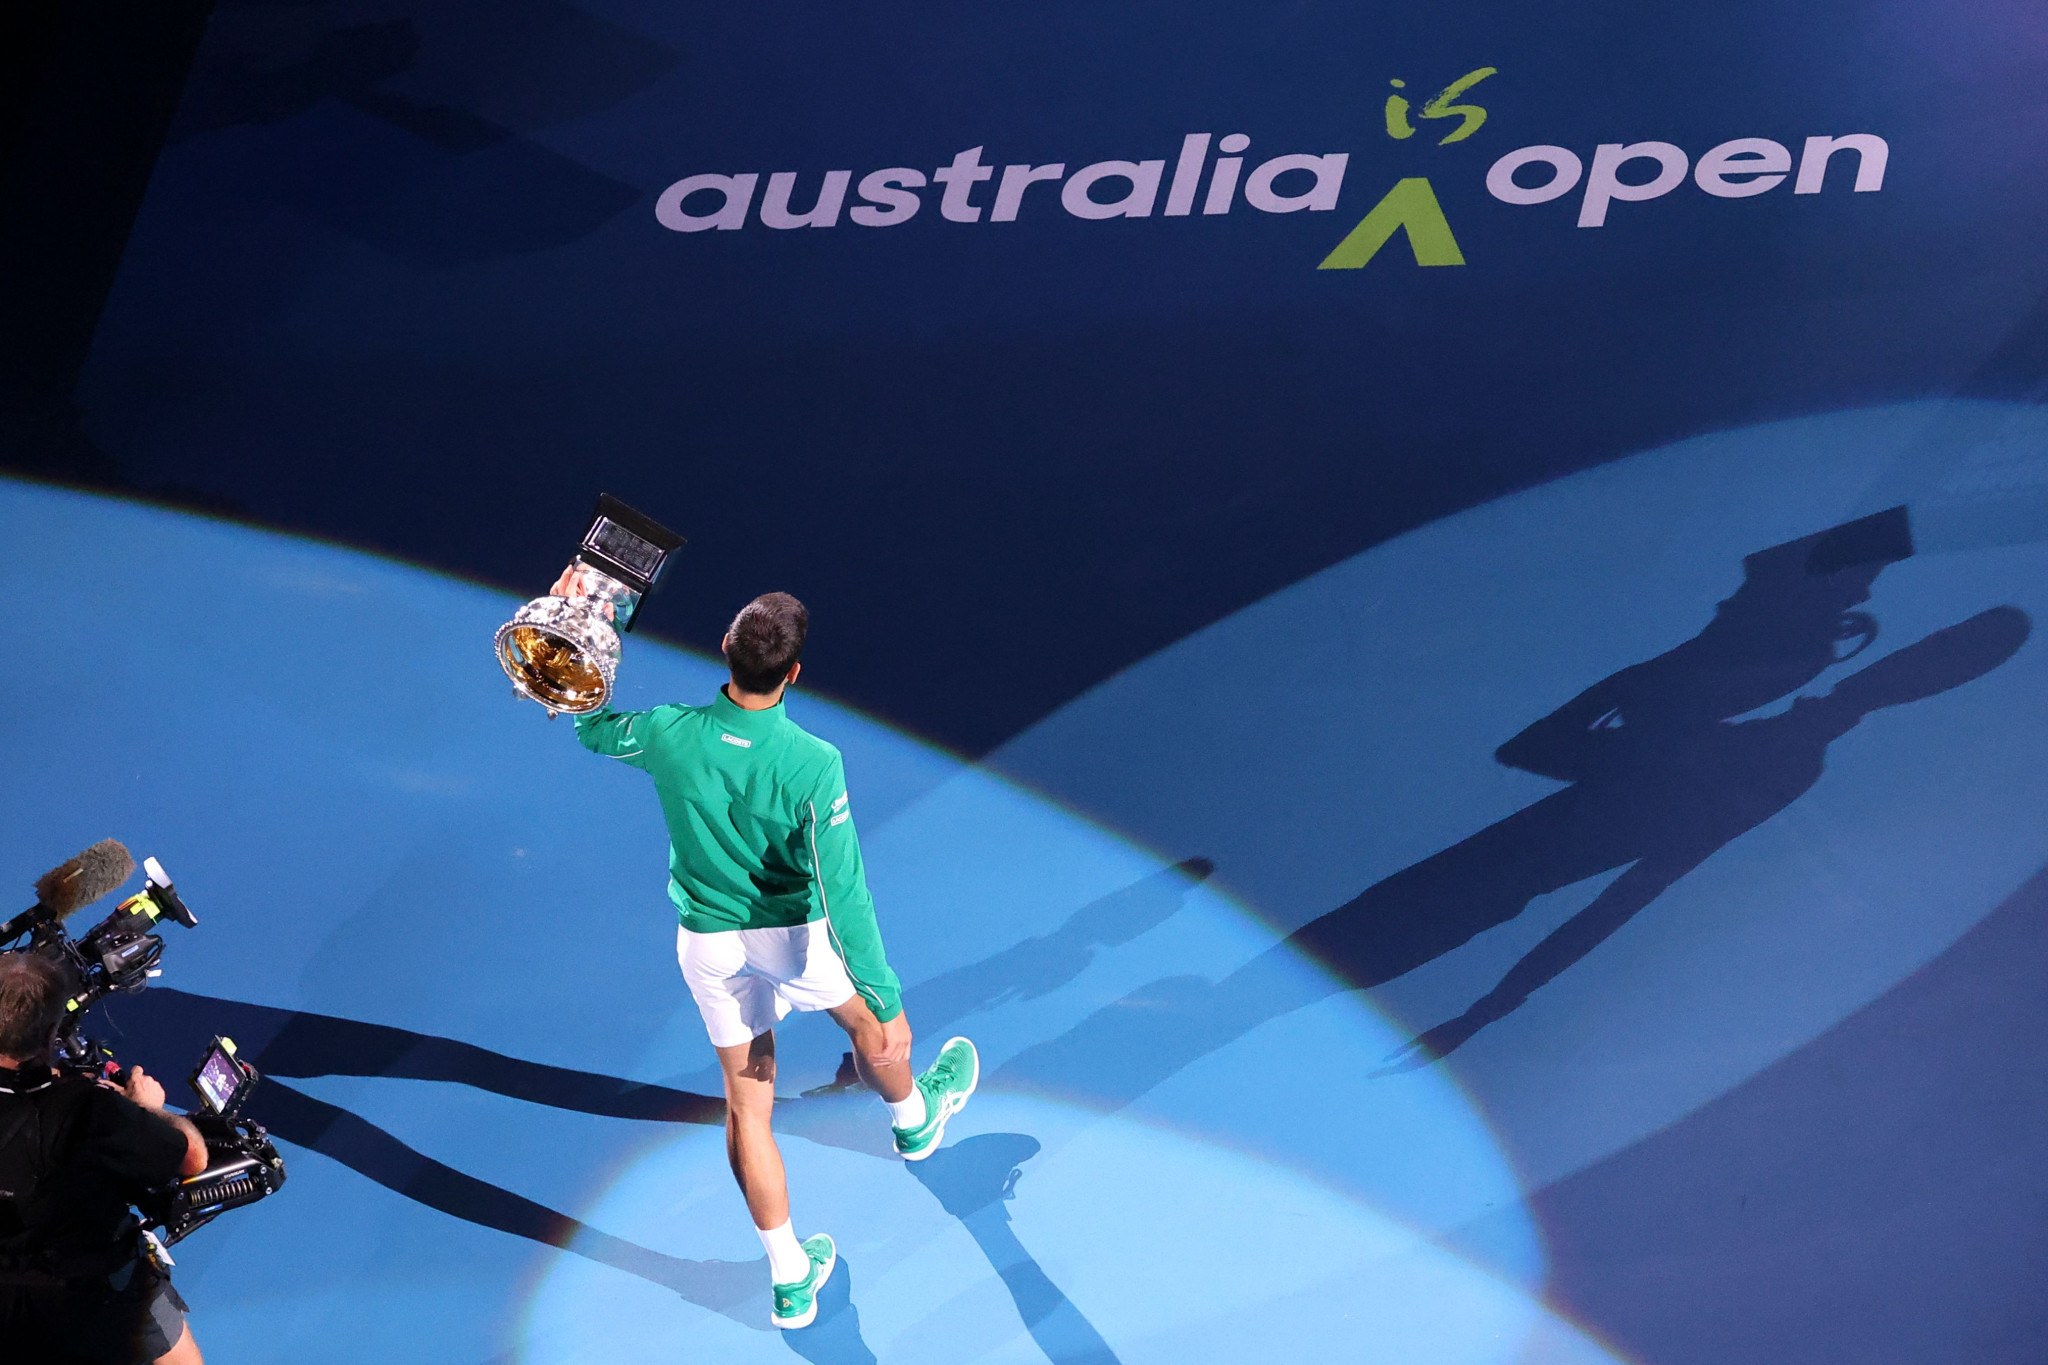 Tennis Australia expect the Australian Open to take place in Melbourne as planned ©Getty Images